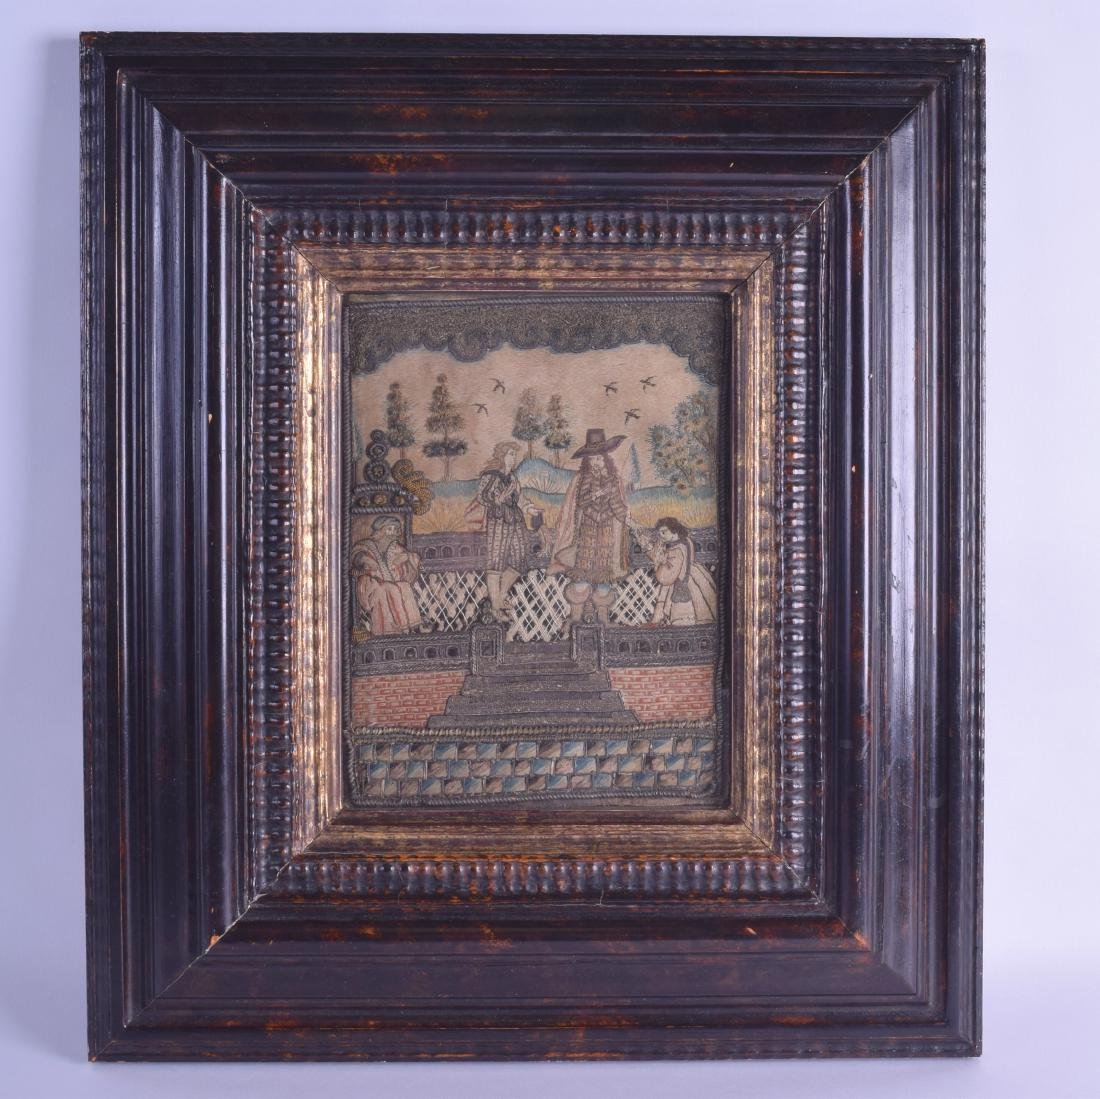 A GOOD 17TH CENTURY QUEEN ANNE FRAMED STUMPWORK PANEL